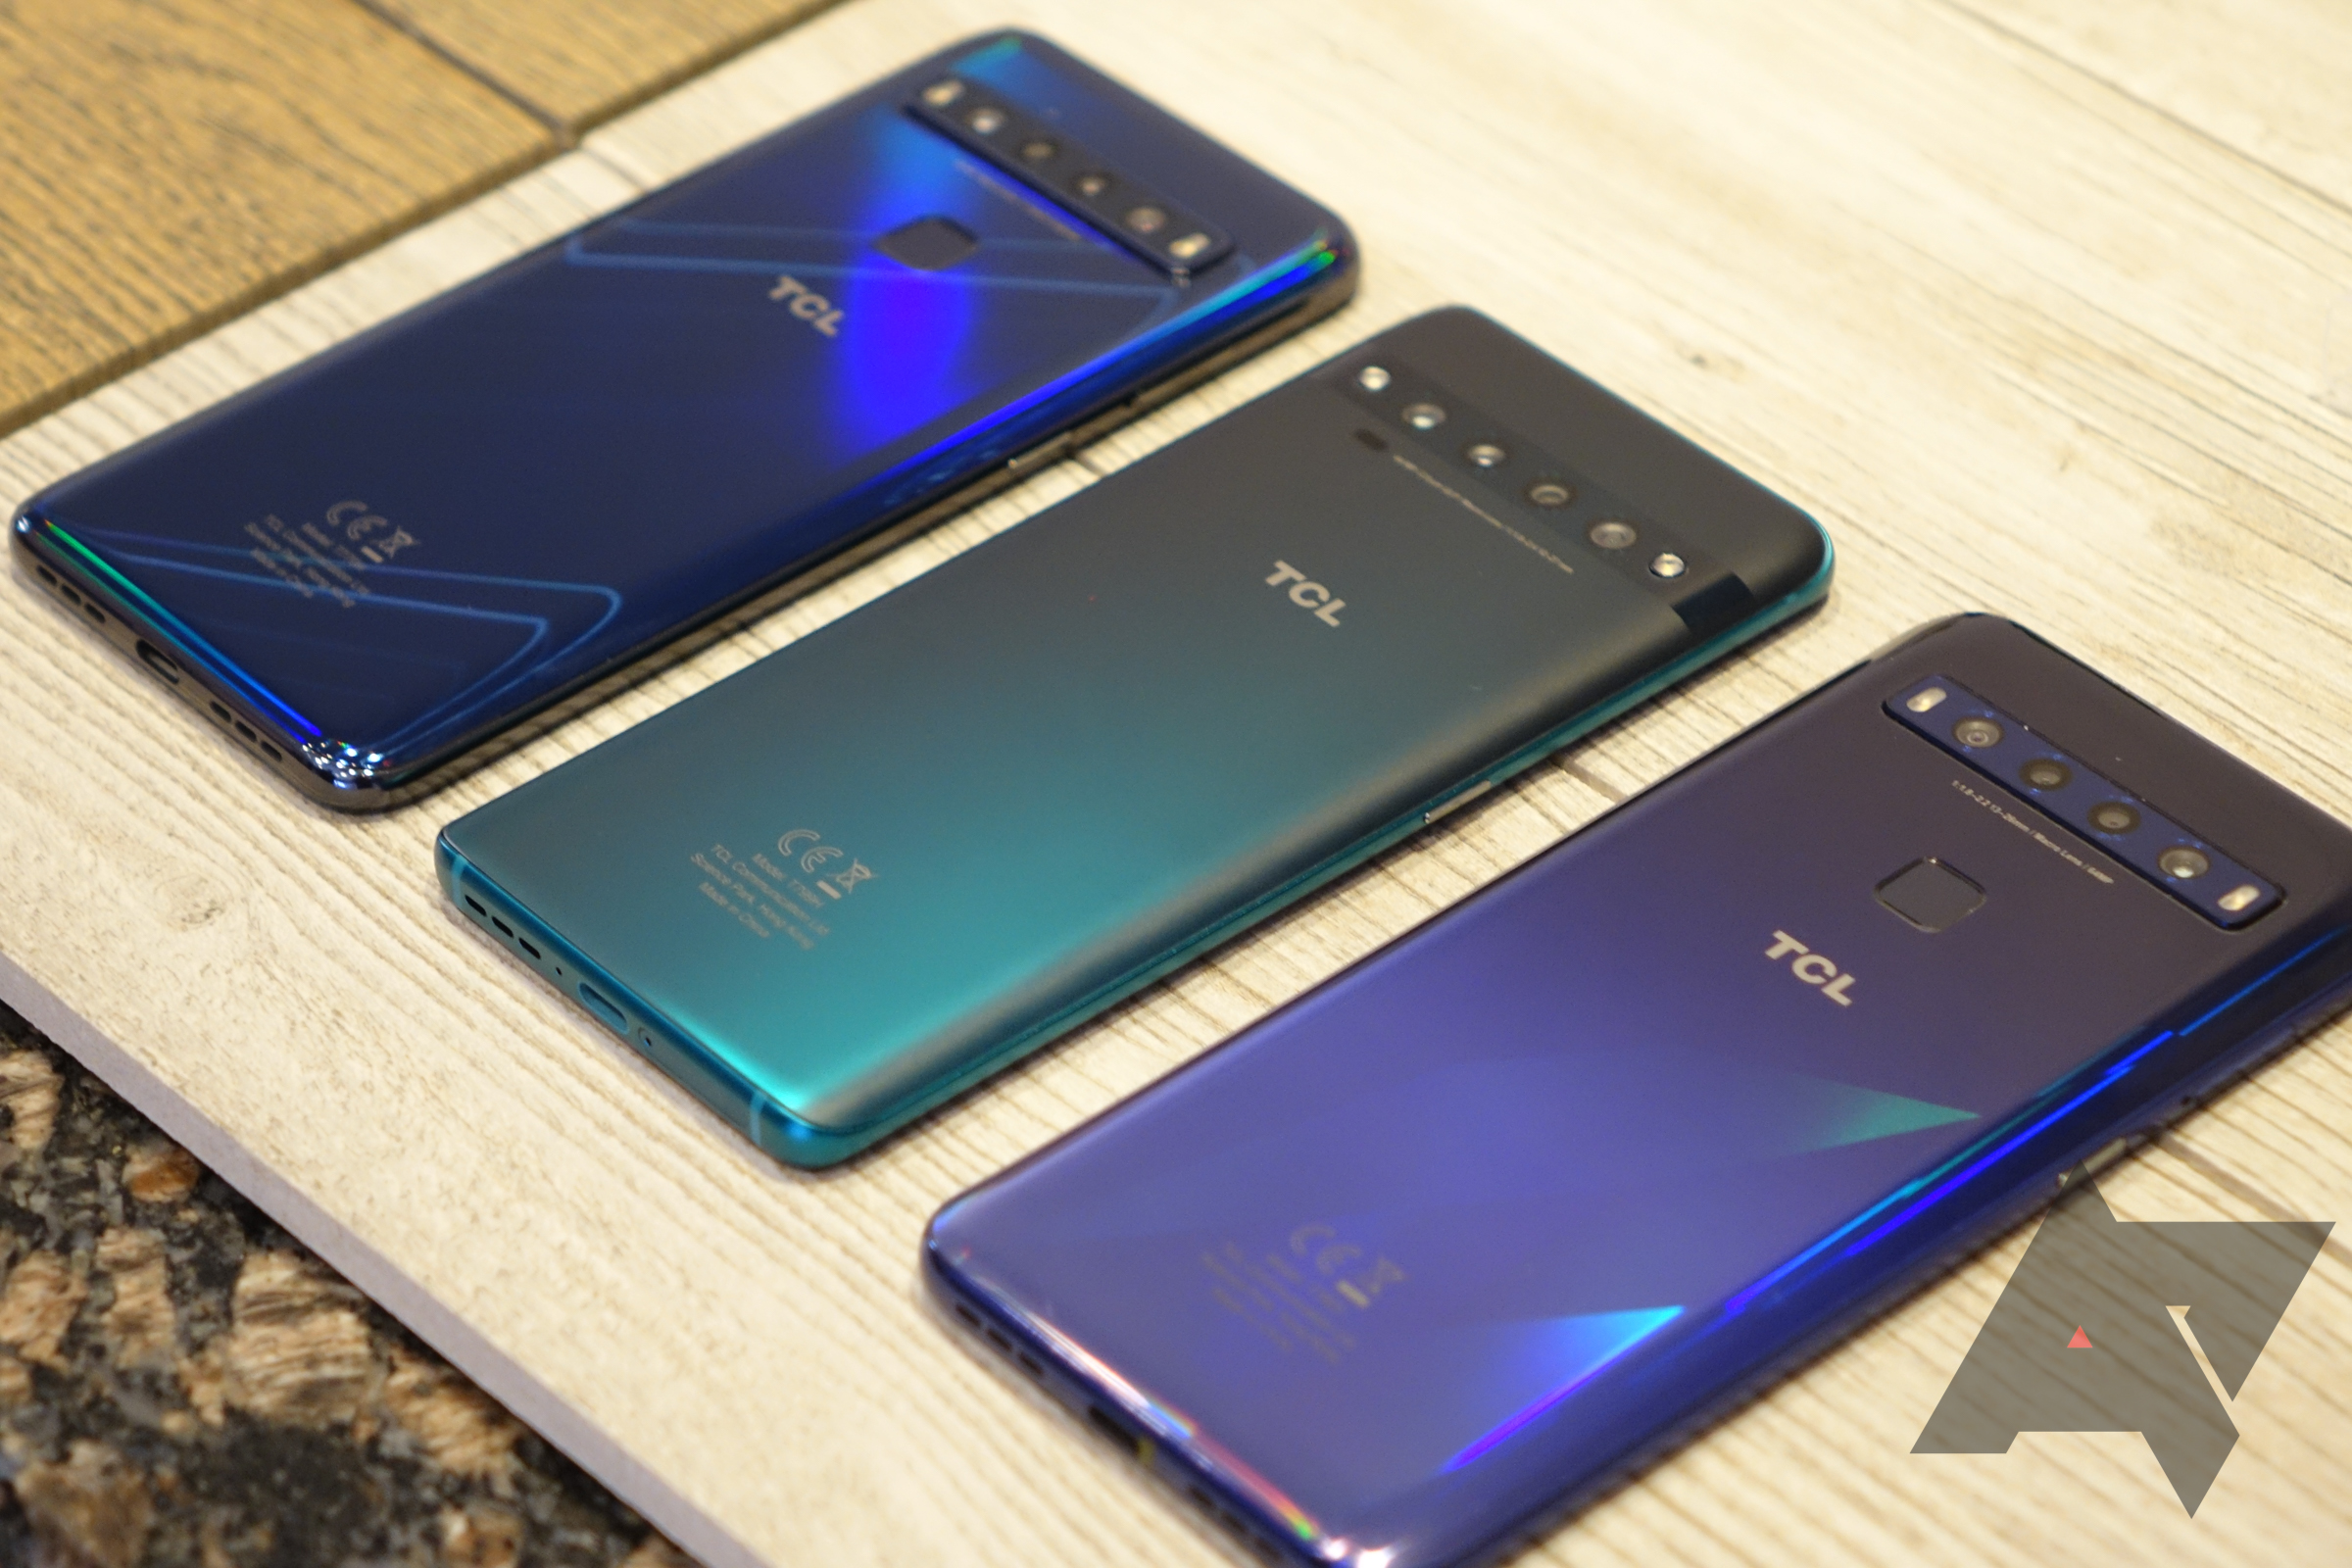 TCL gets serious about its smartphones in CES 2020